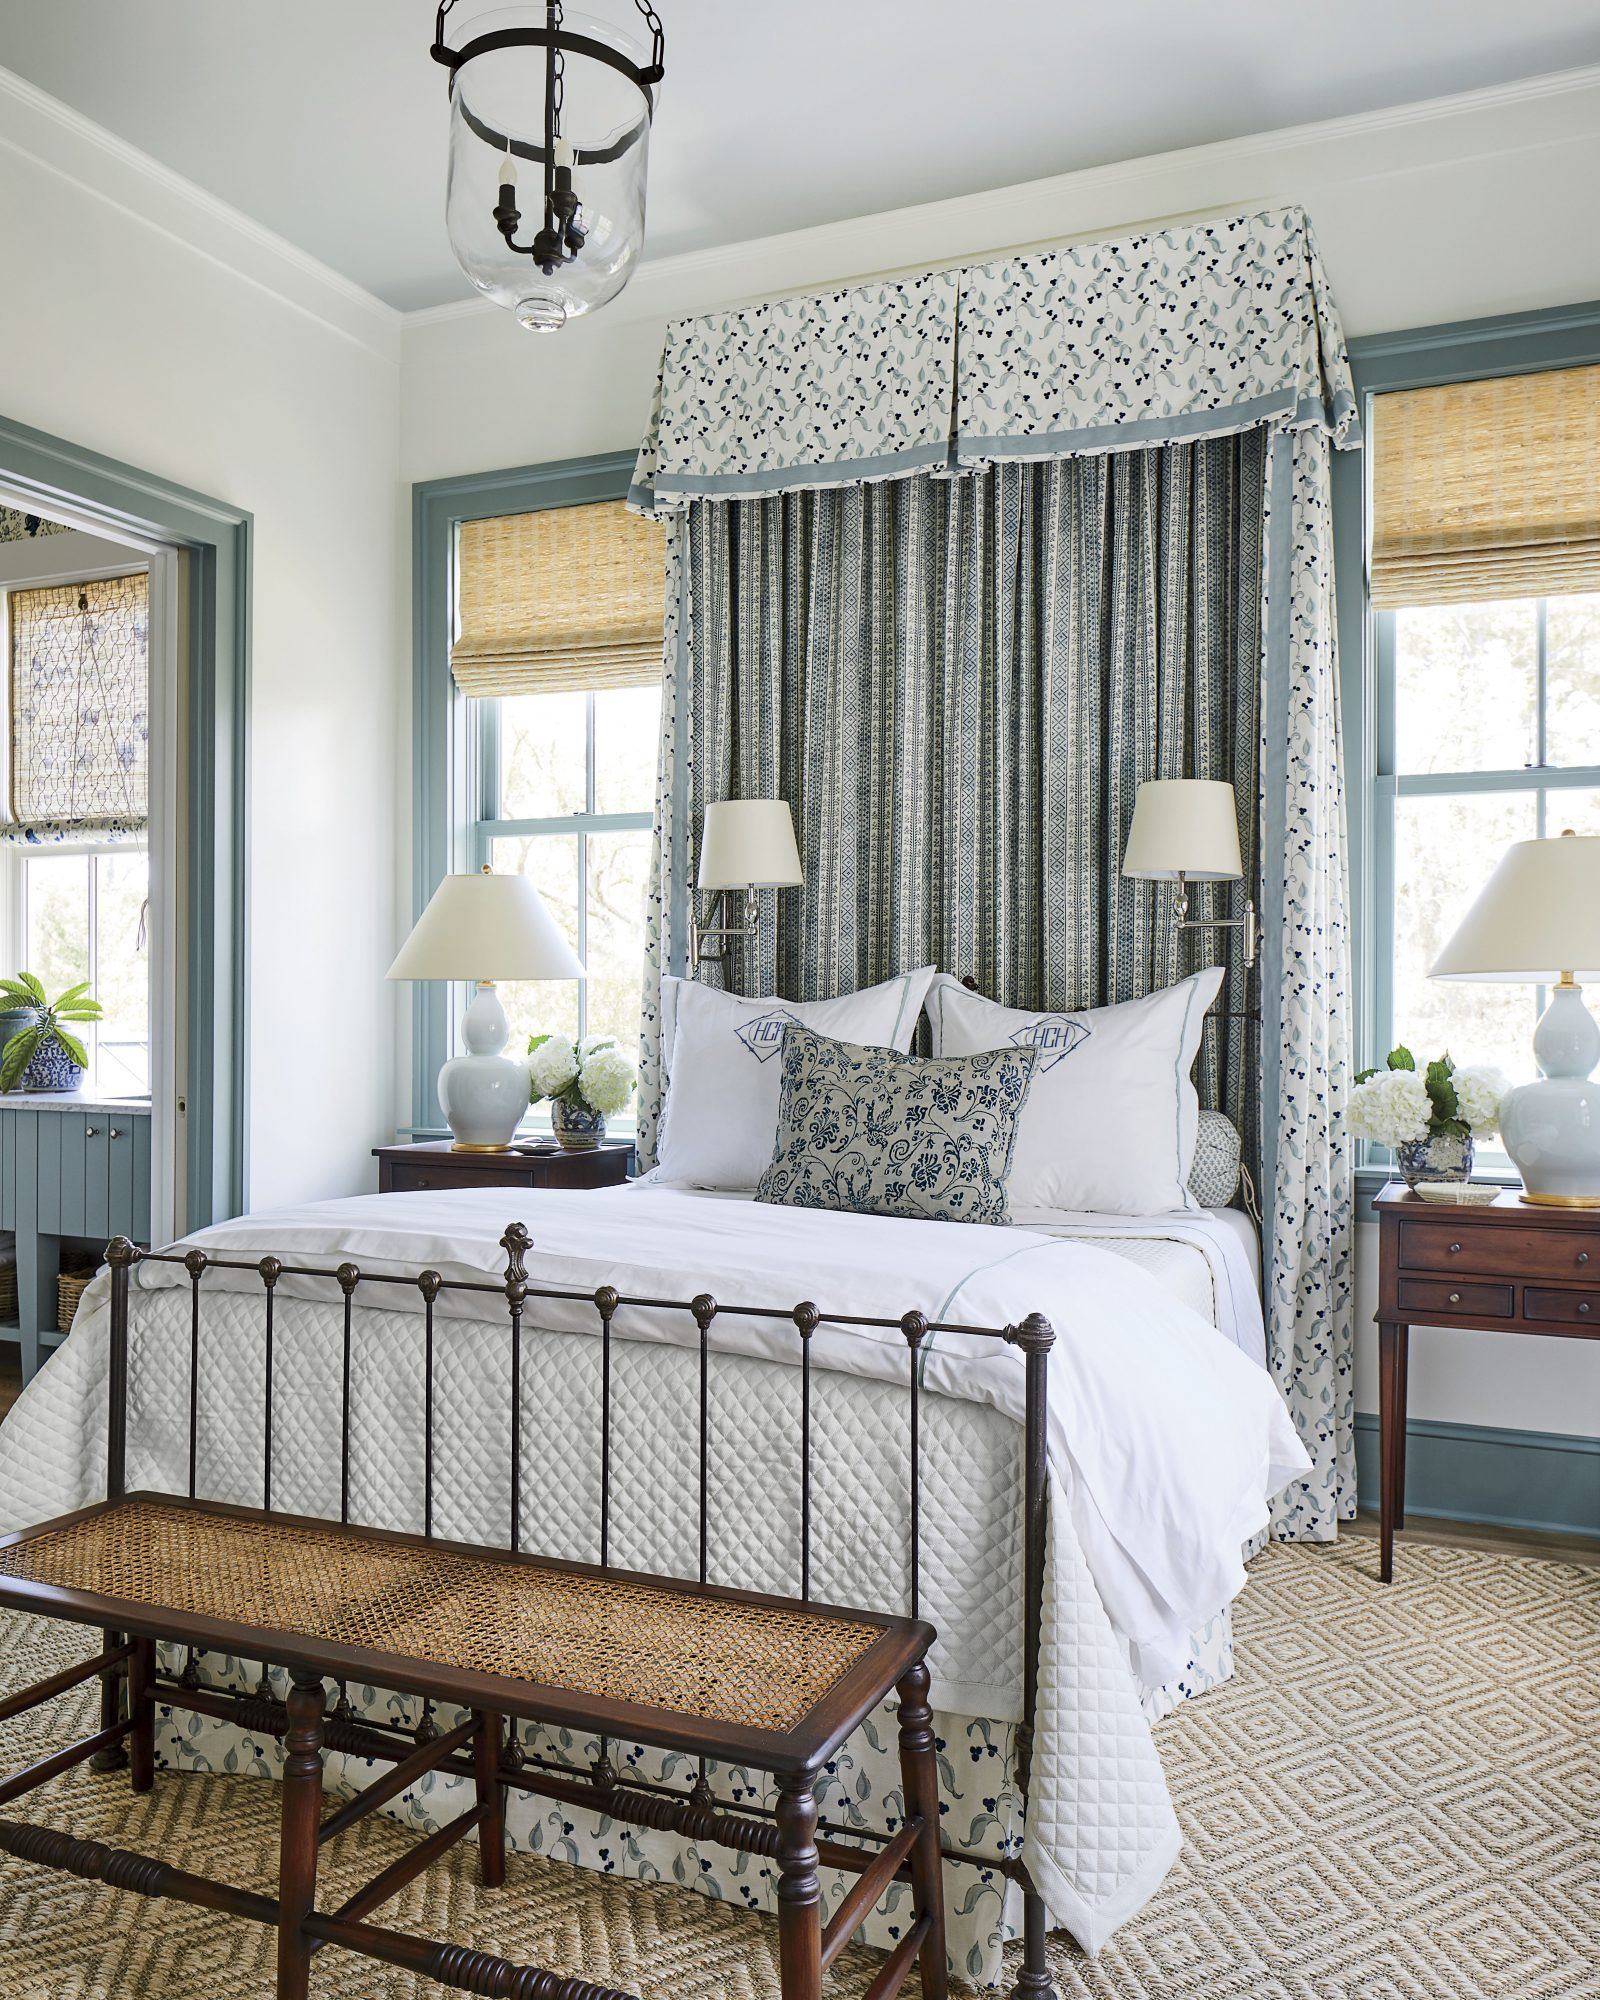 How To Make Your Bed Like A Decorator In 2020 Southern Living Homes Home Decor Styles Calming Bedroom Colors